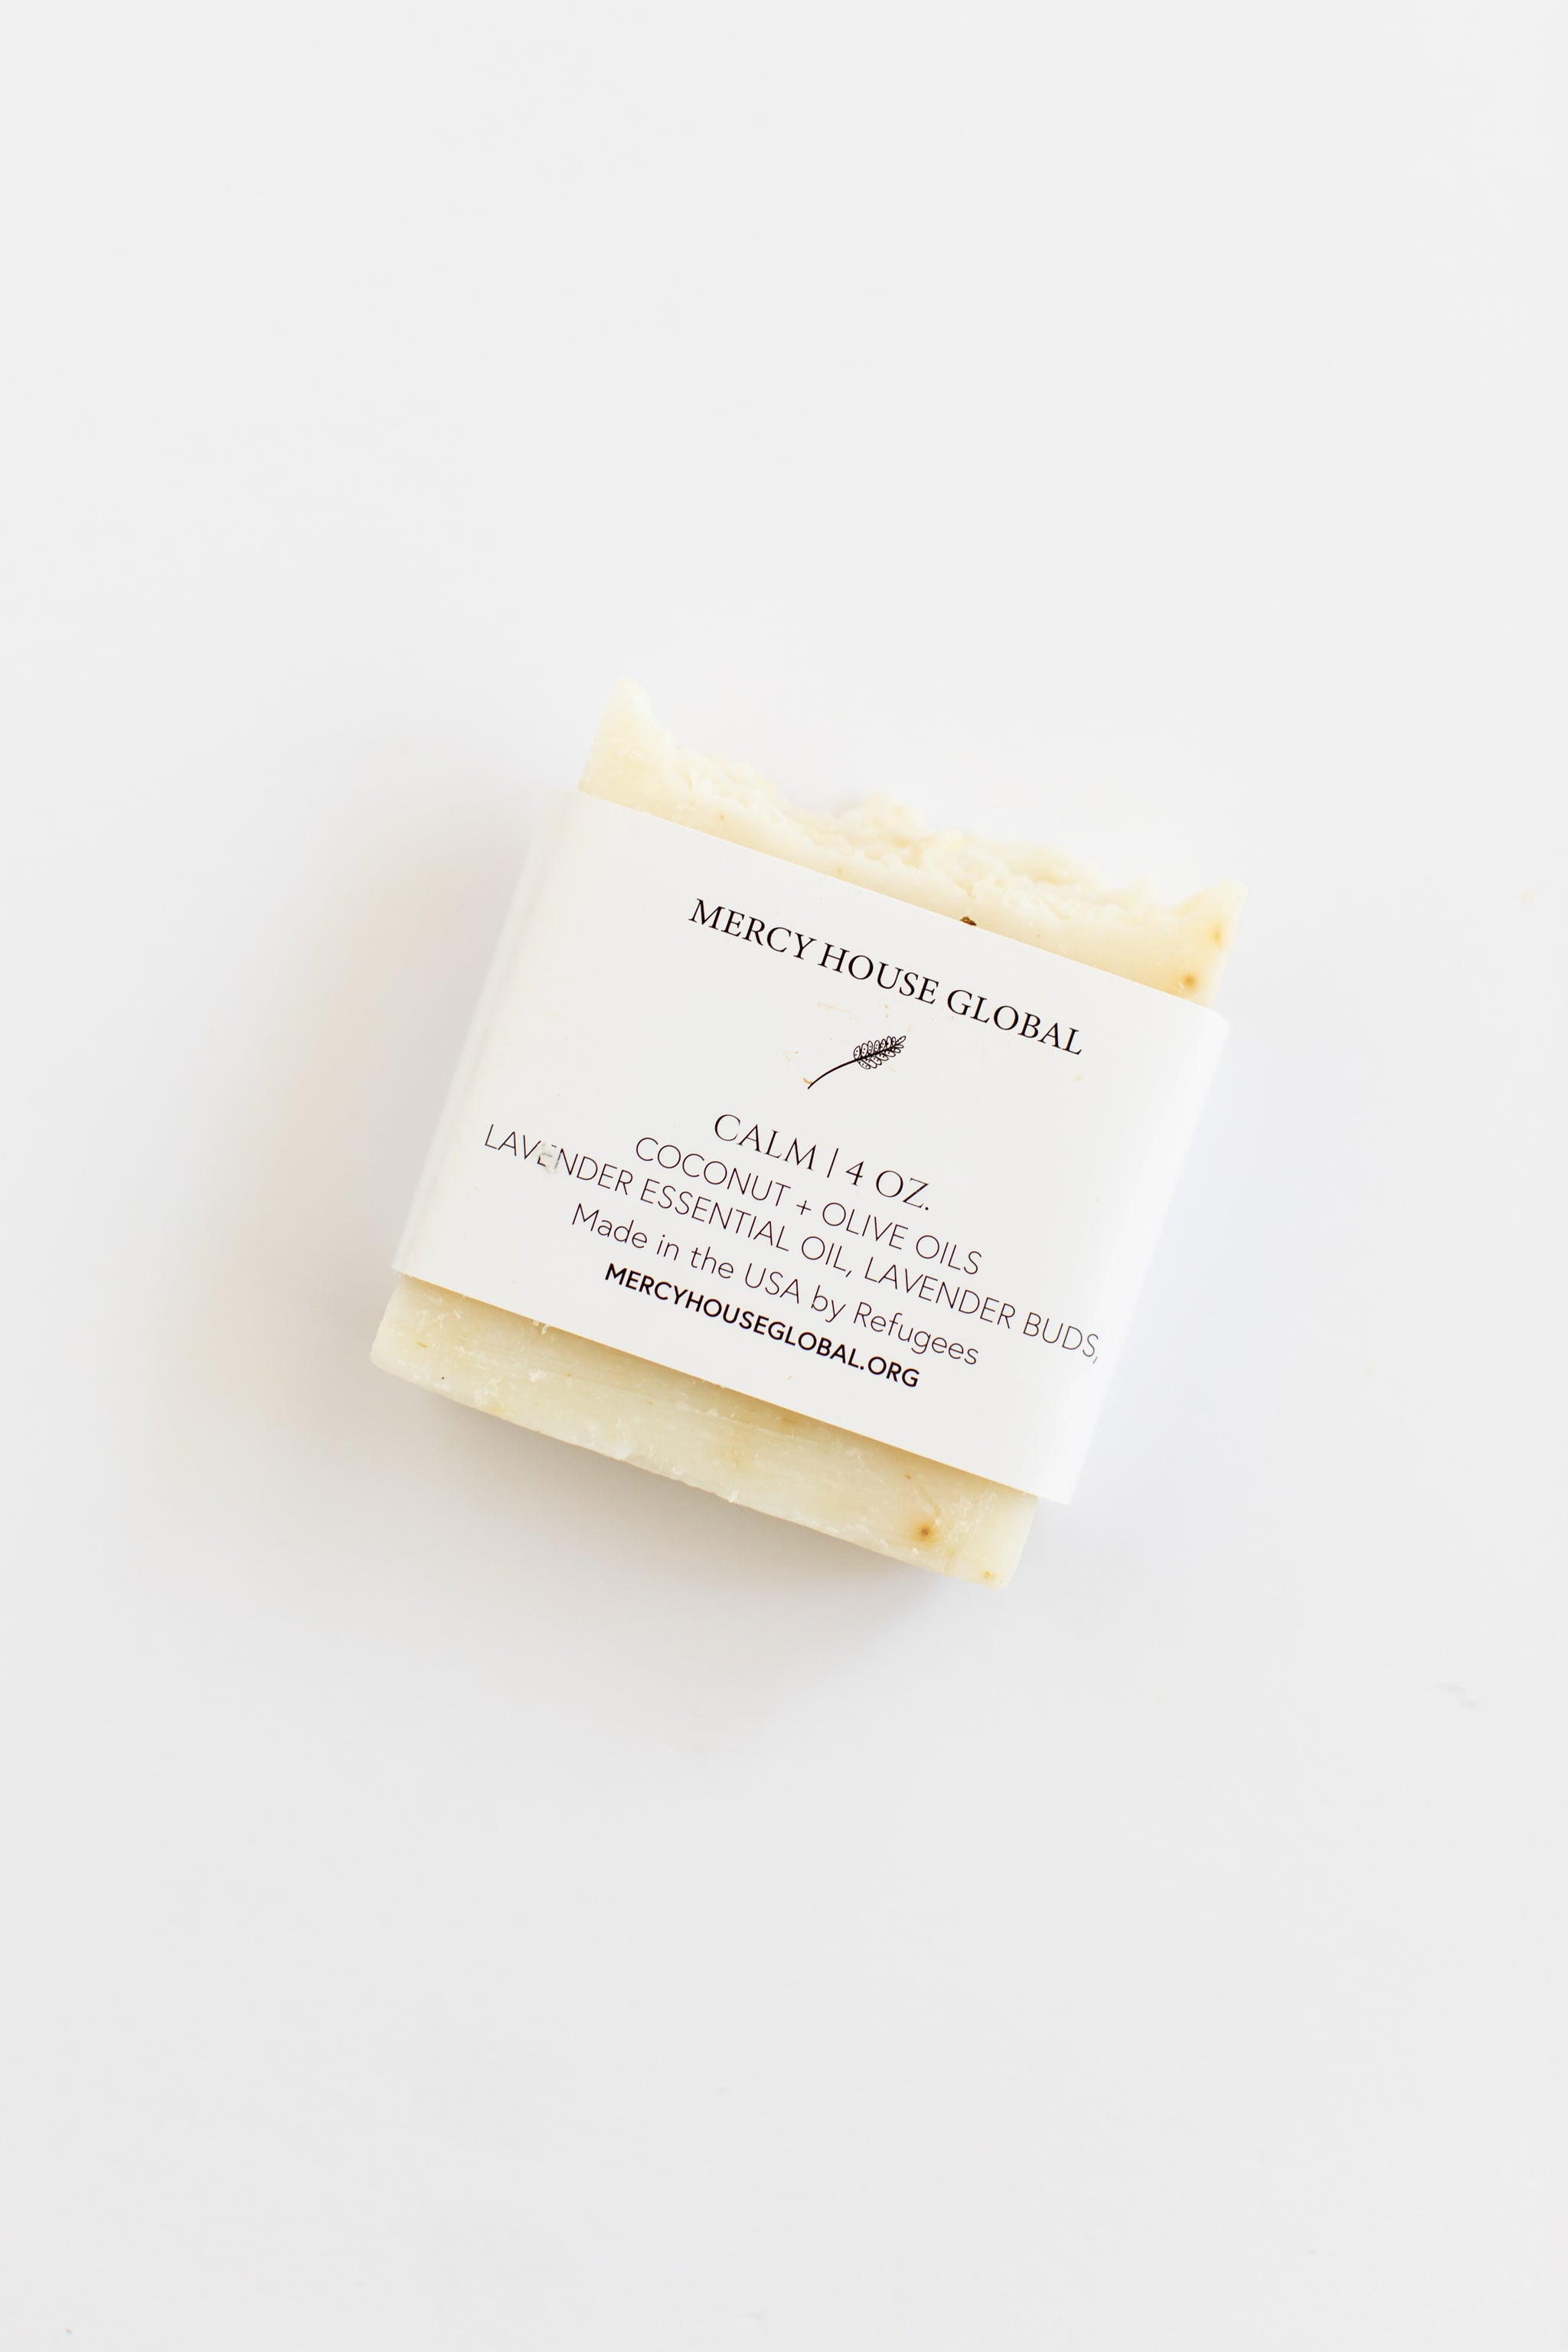 Calm | 4 oz. Lavender + Coconut Soap Bar